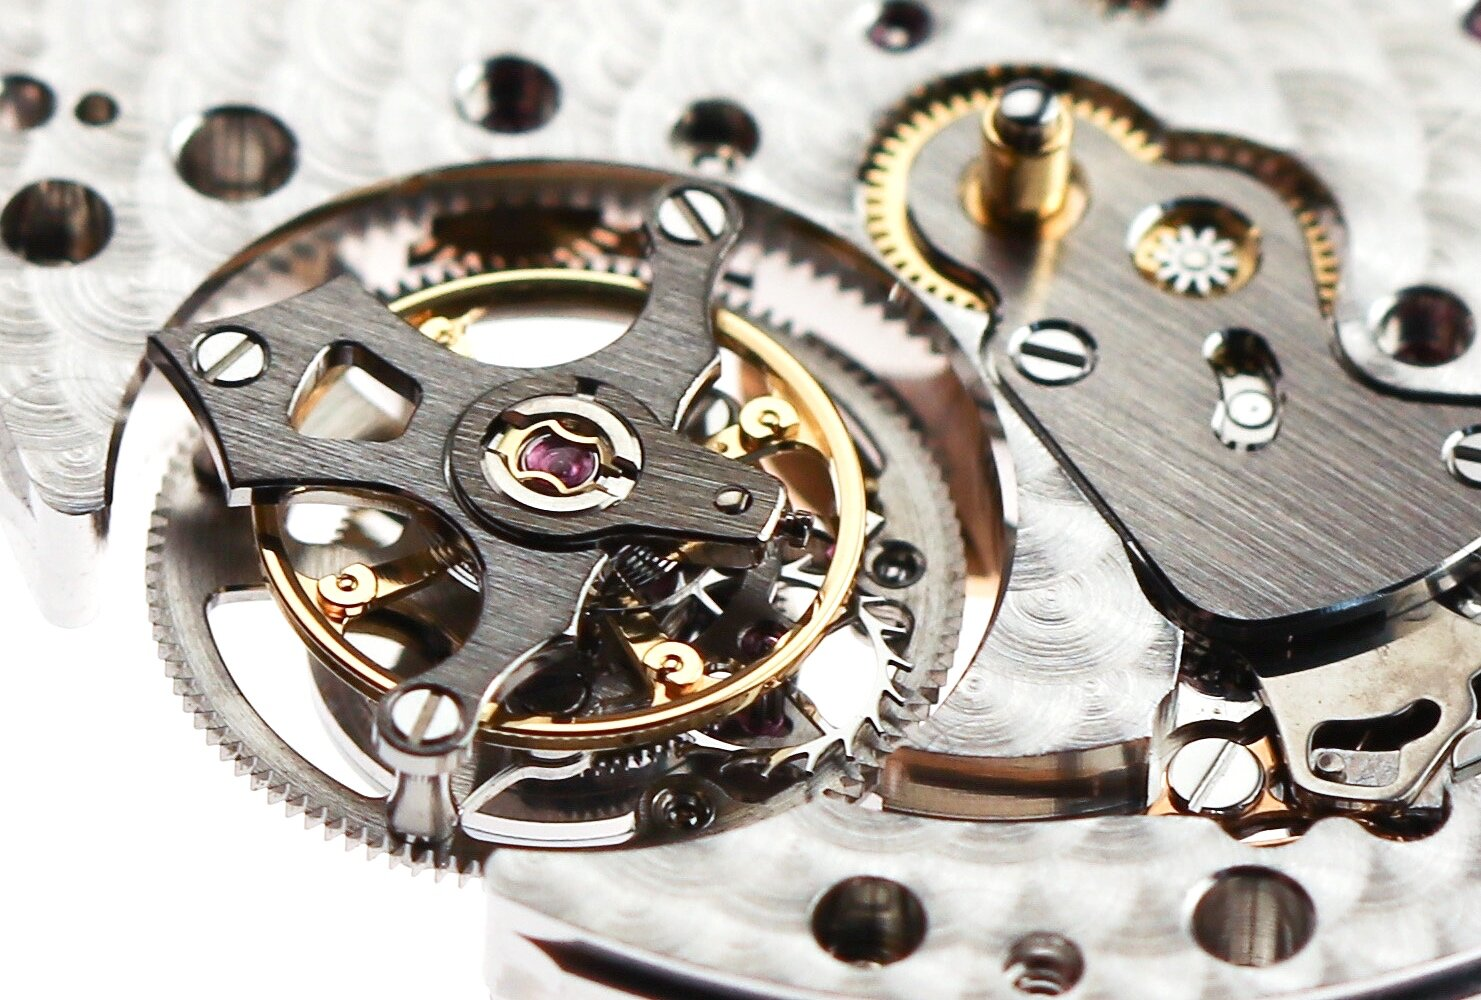 The tourbillon cage sits high above the mainplate so that it will be flush with the dial when added.